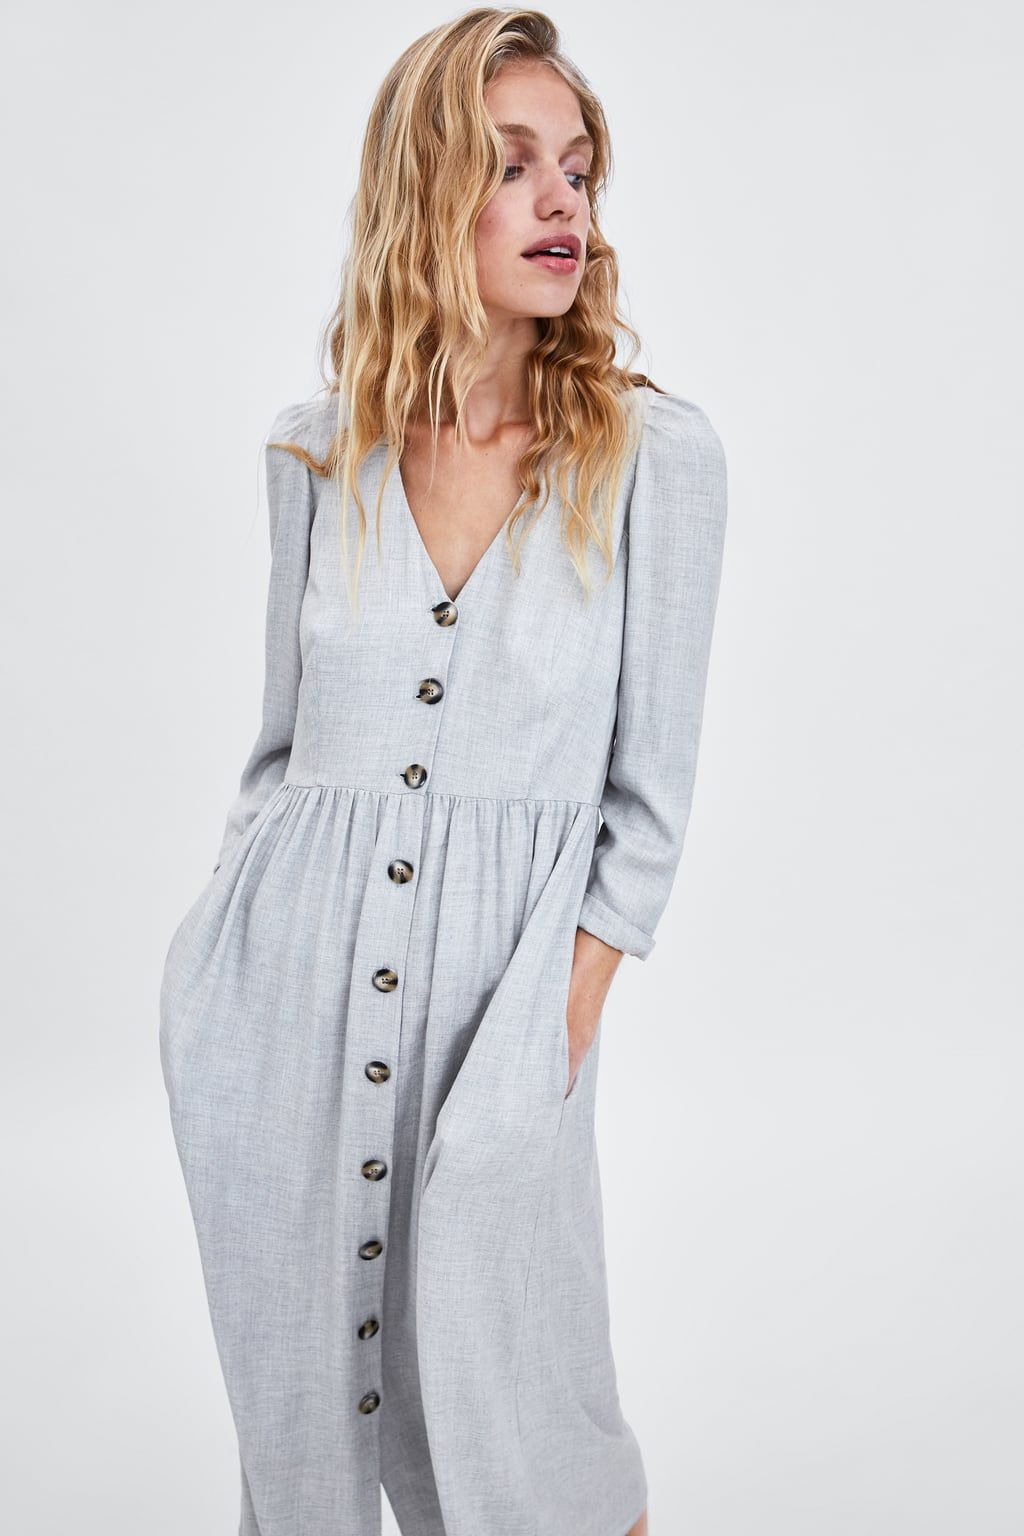 image 5 of buttoned dress from zara | skirt fashion, fashion